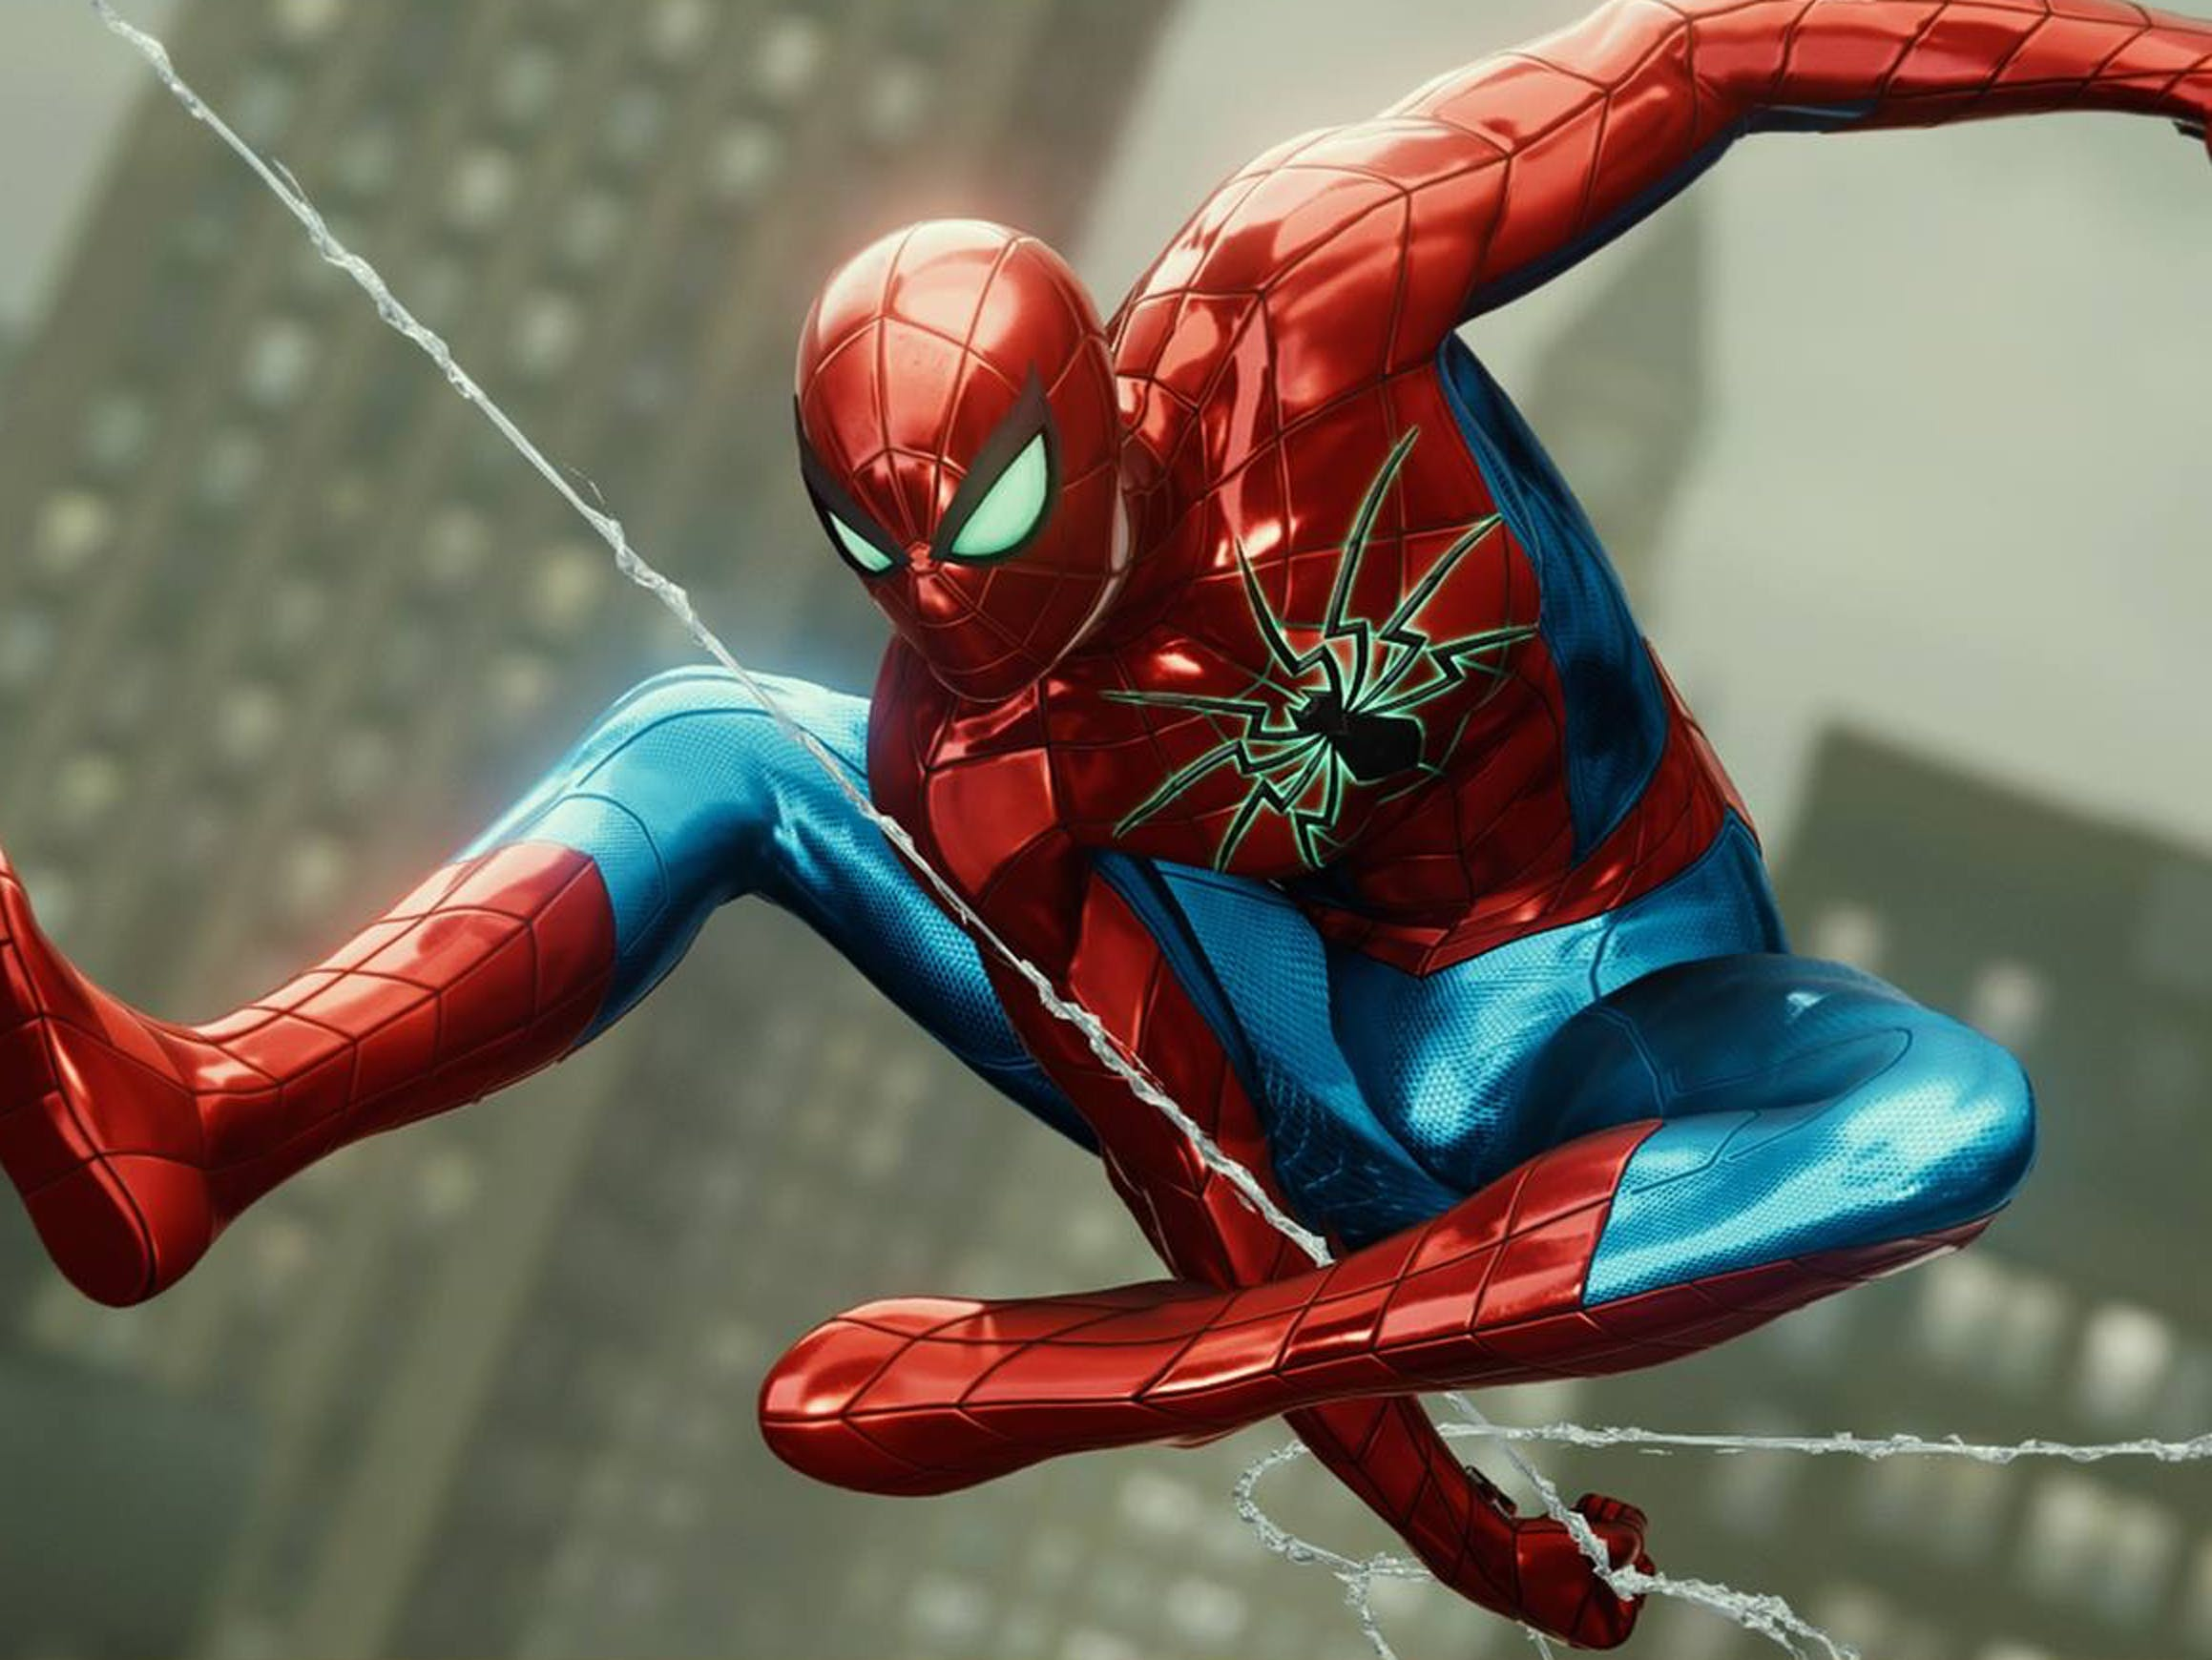 Spider-Man' PS4 Suits: Definitive Guide to the Origin of